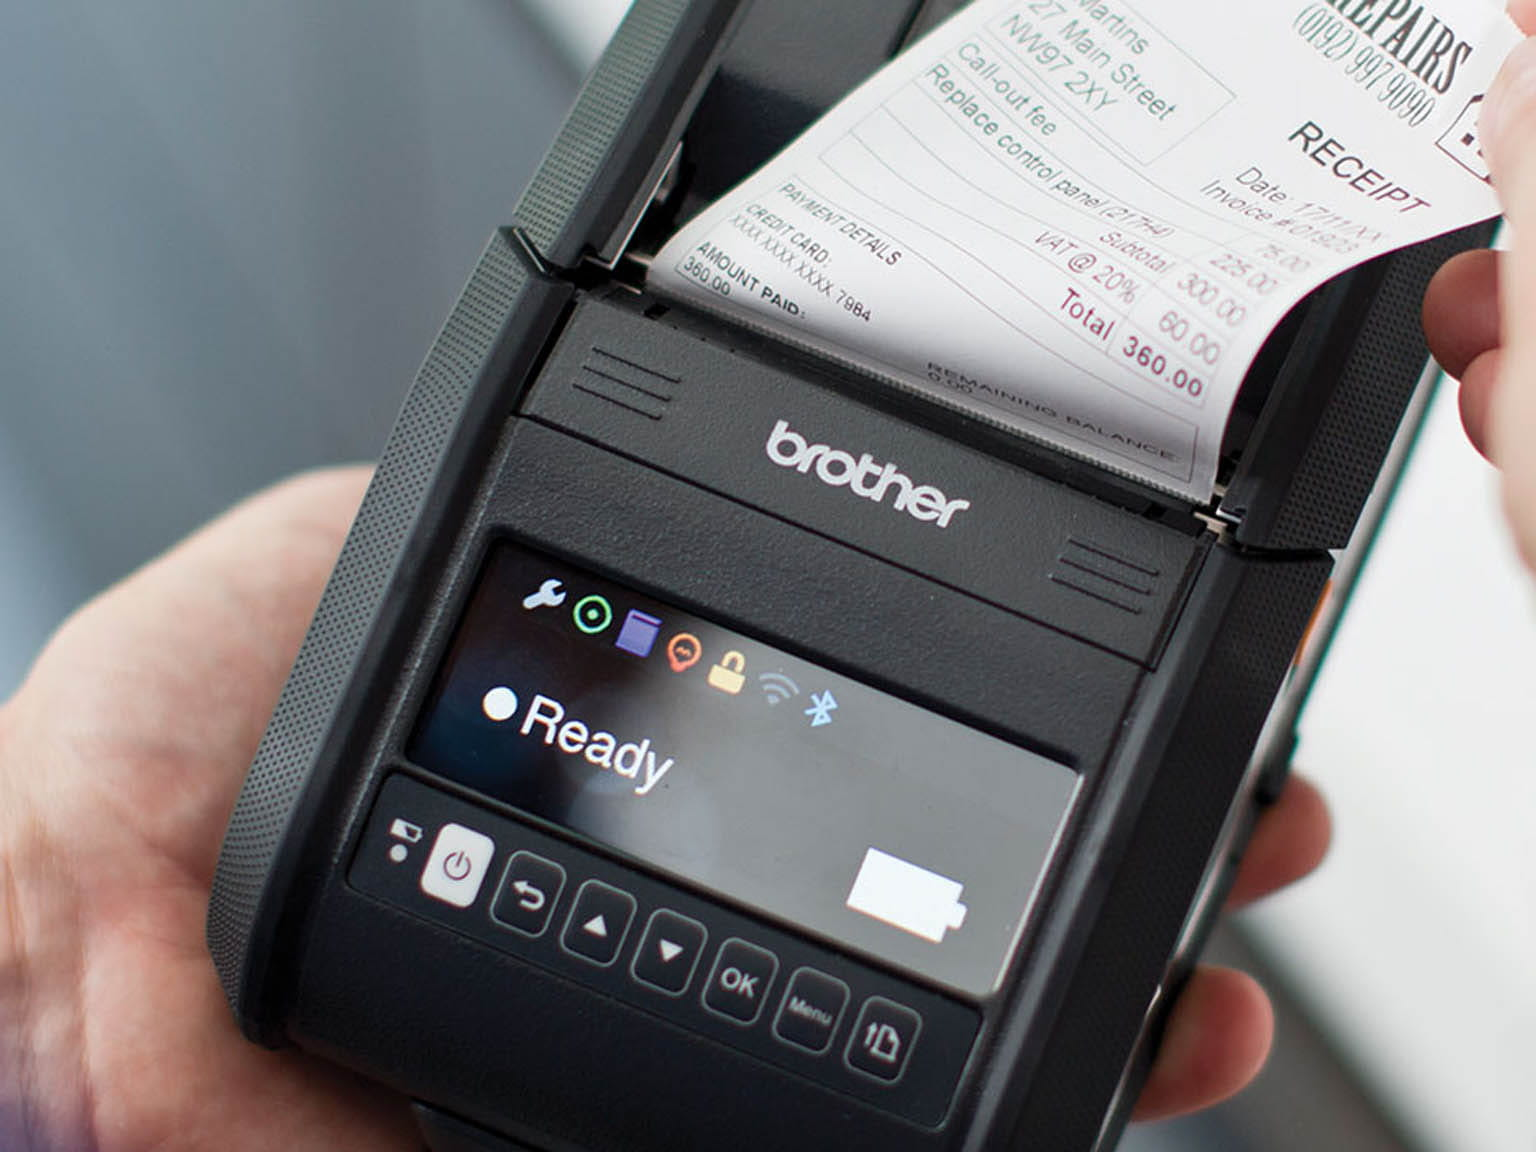 Brother Rugged Jet mobile printer in use